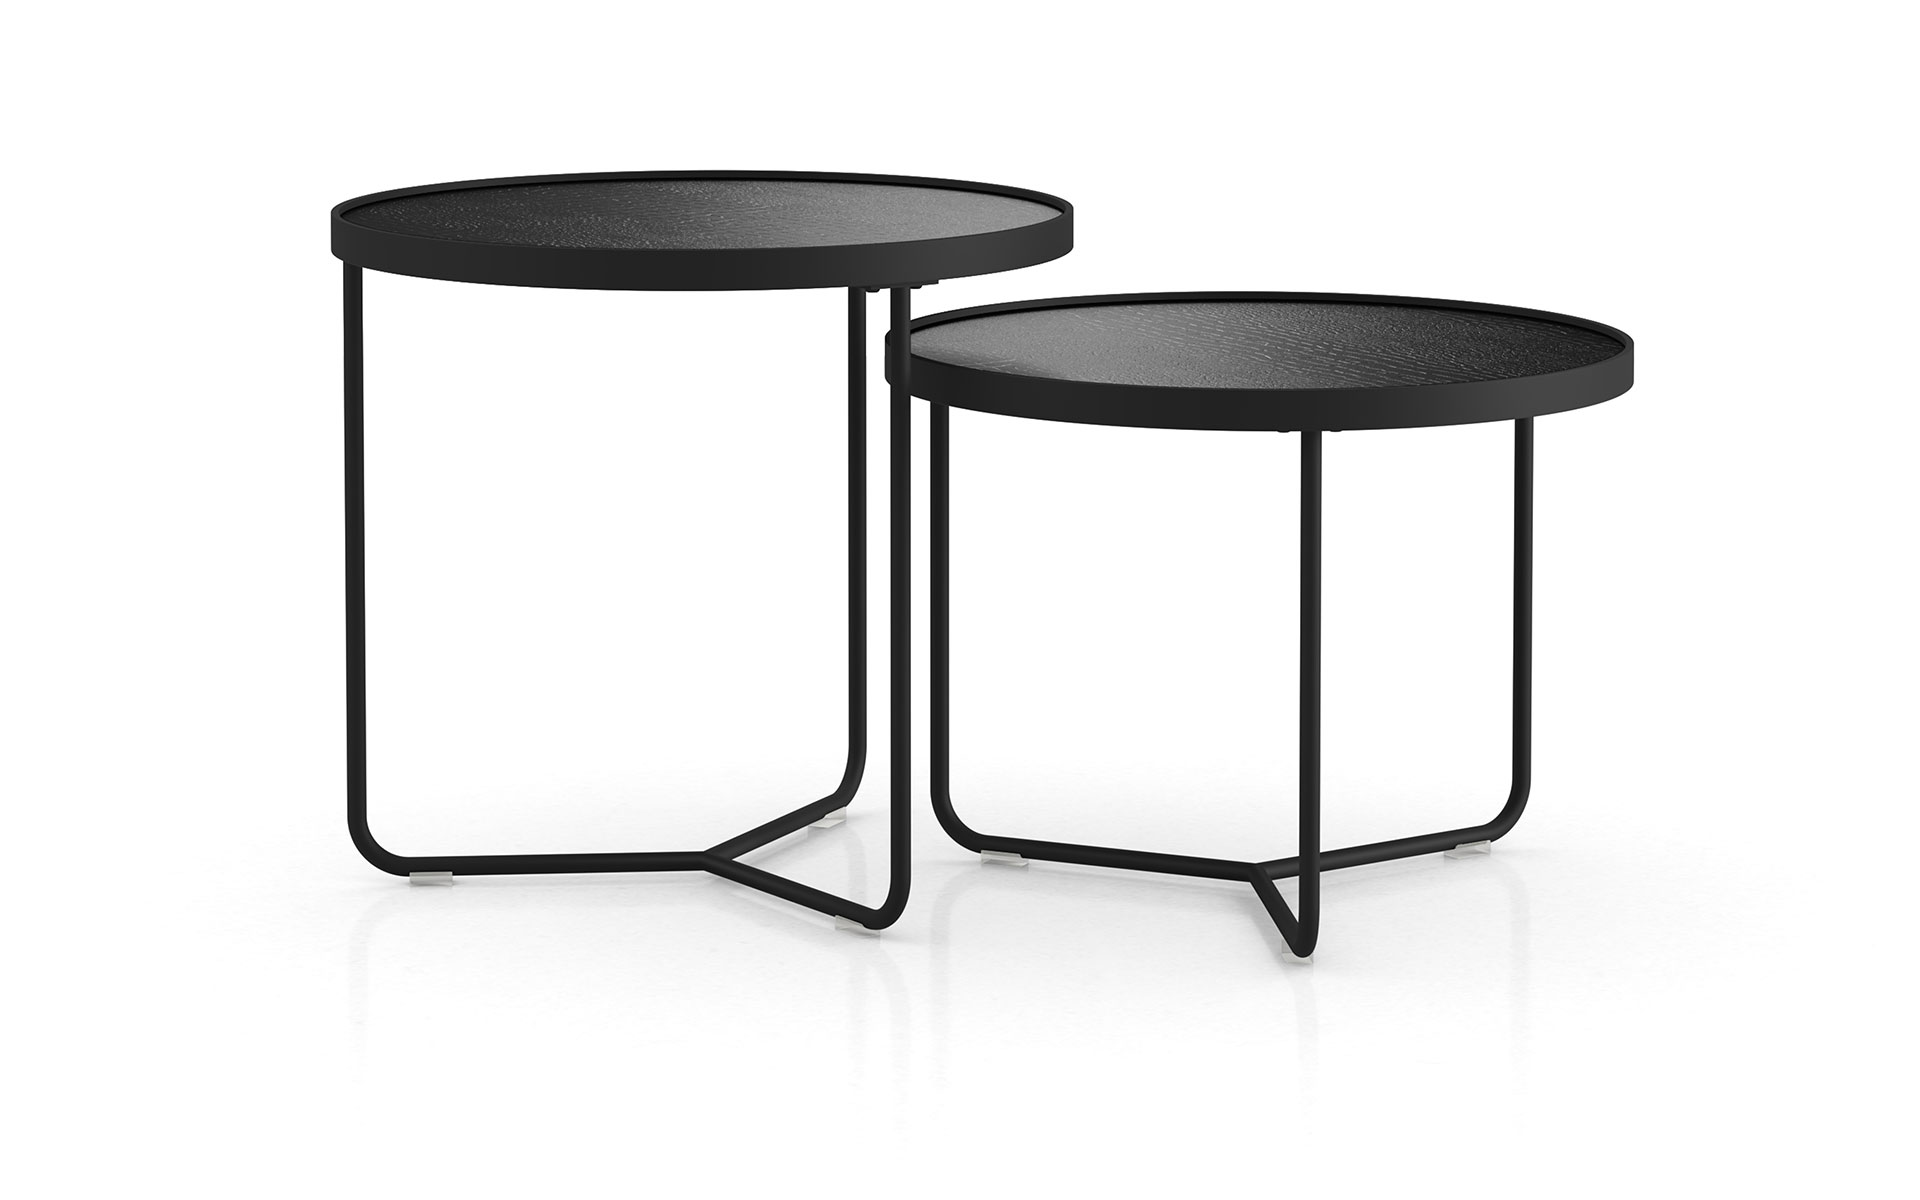 Tremendous Modloft Adelphi Nesting Side Tables Caraccident5 Cool Chair Designs And Ideas Caraccident5Info